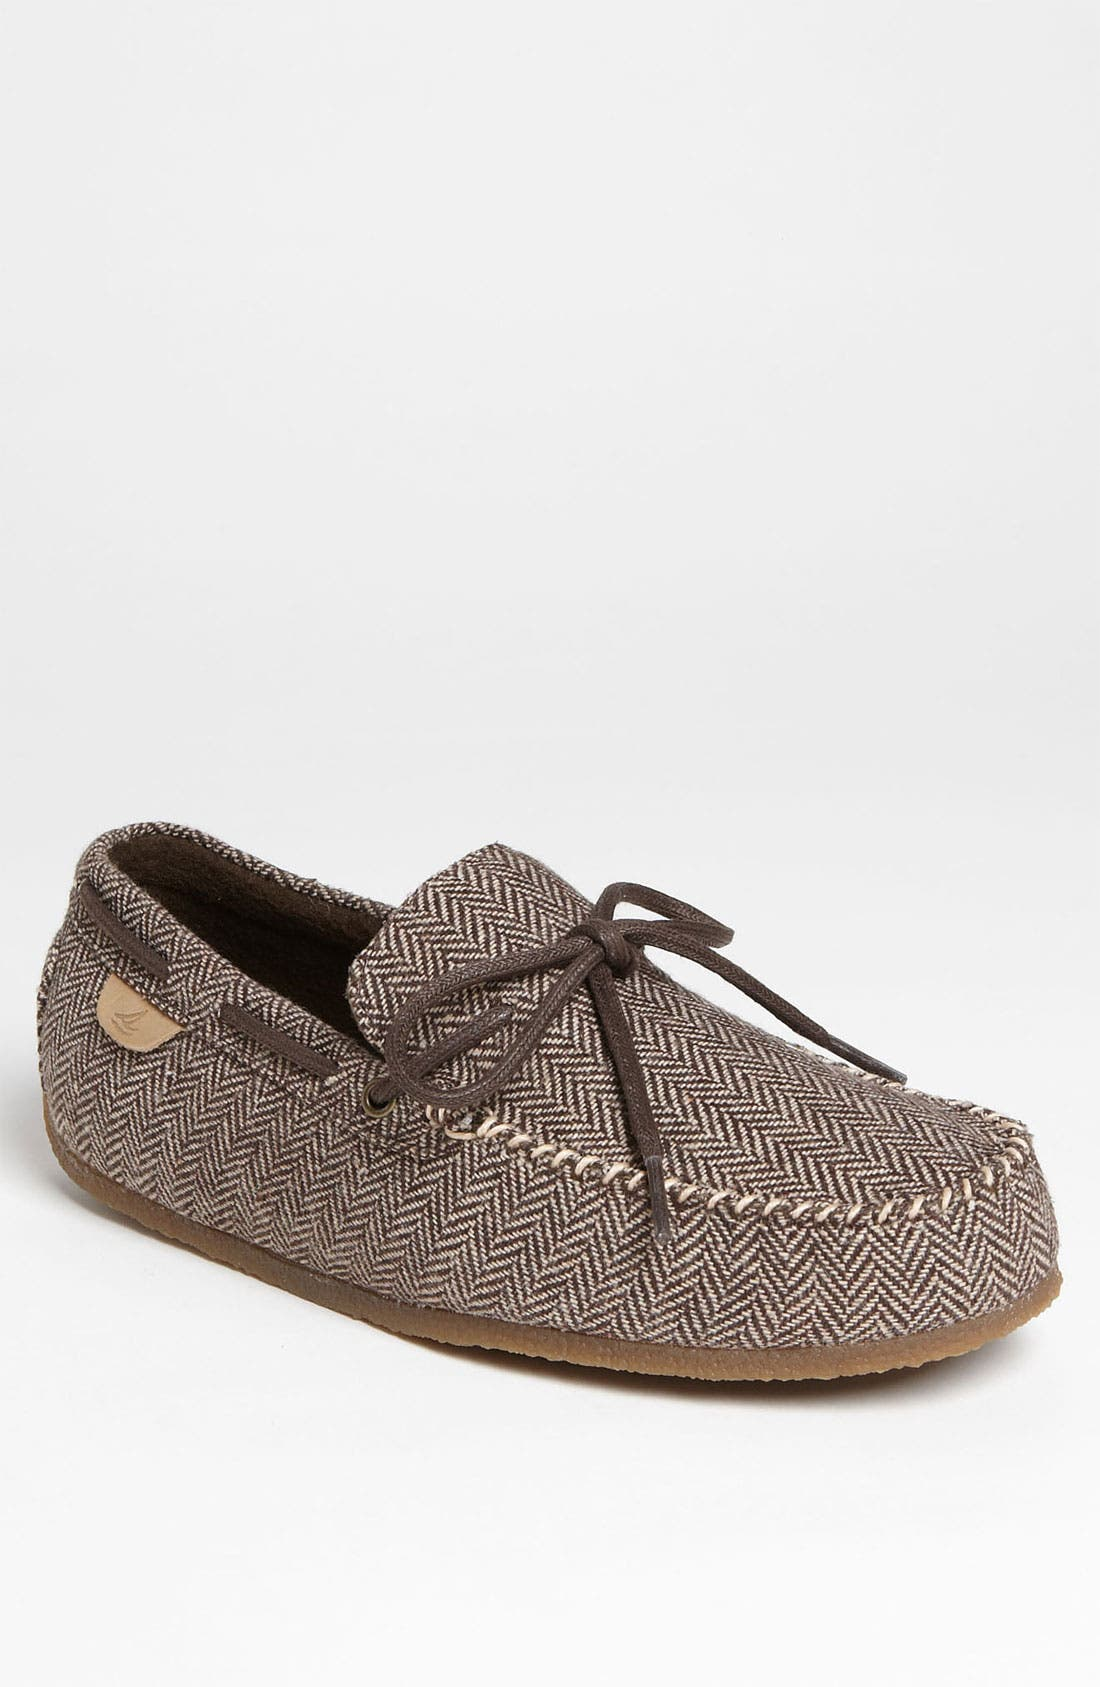 Main Image - Sperry Top-Sider® 'R & R' Moc Toe Slipper